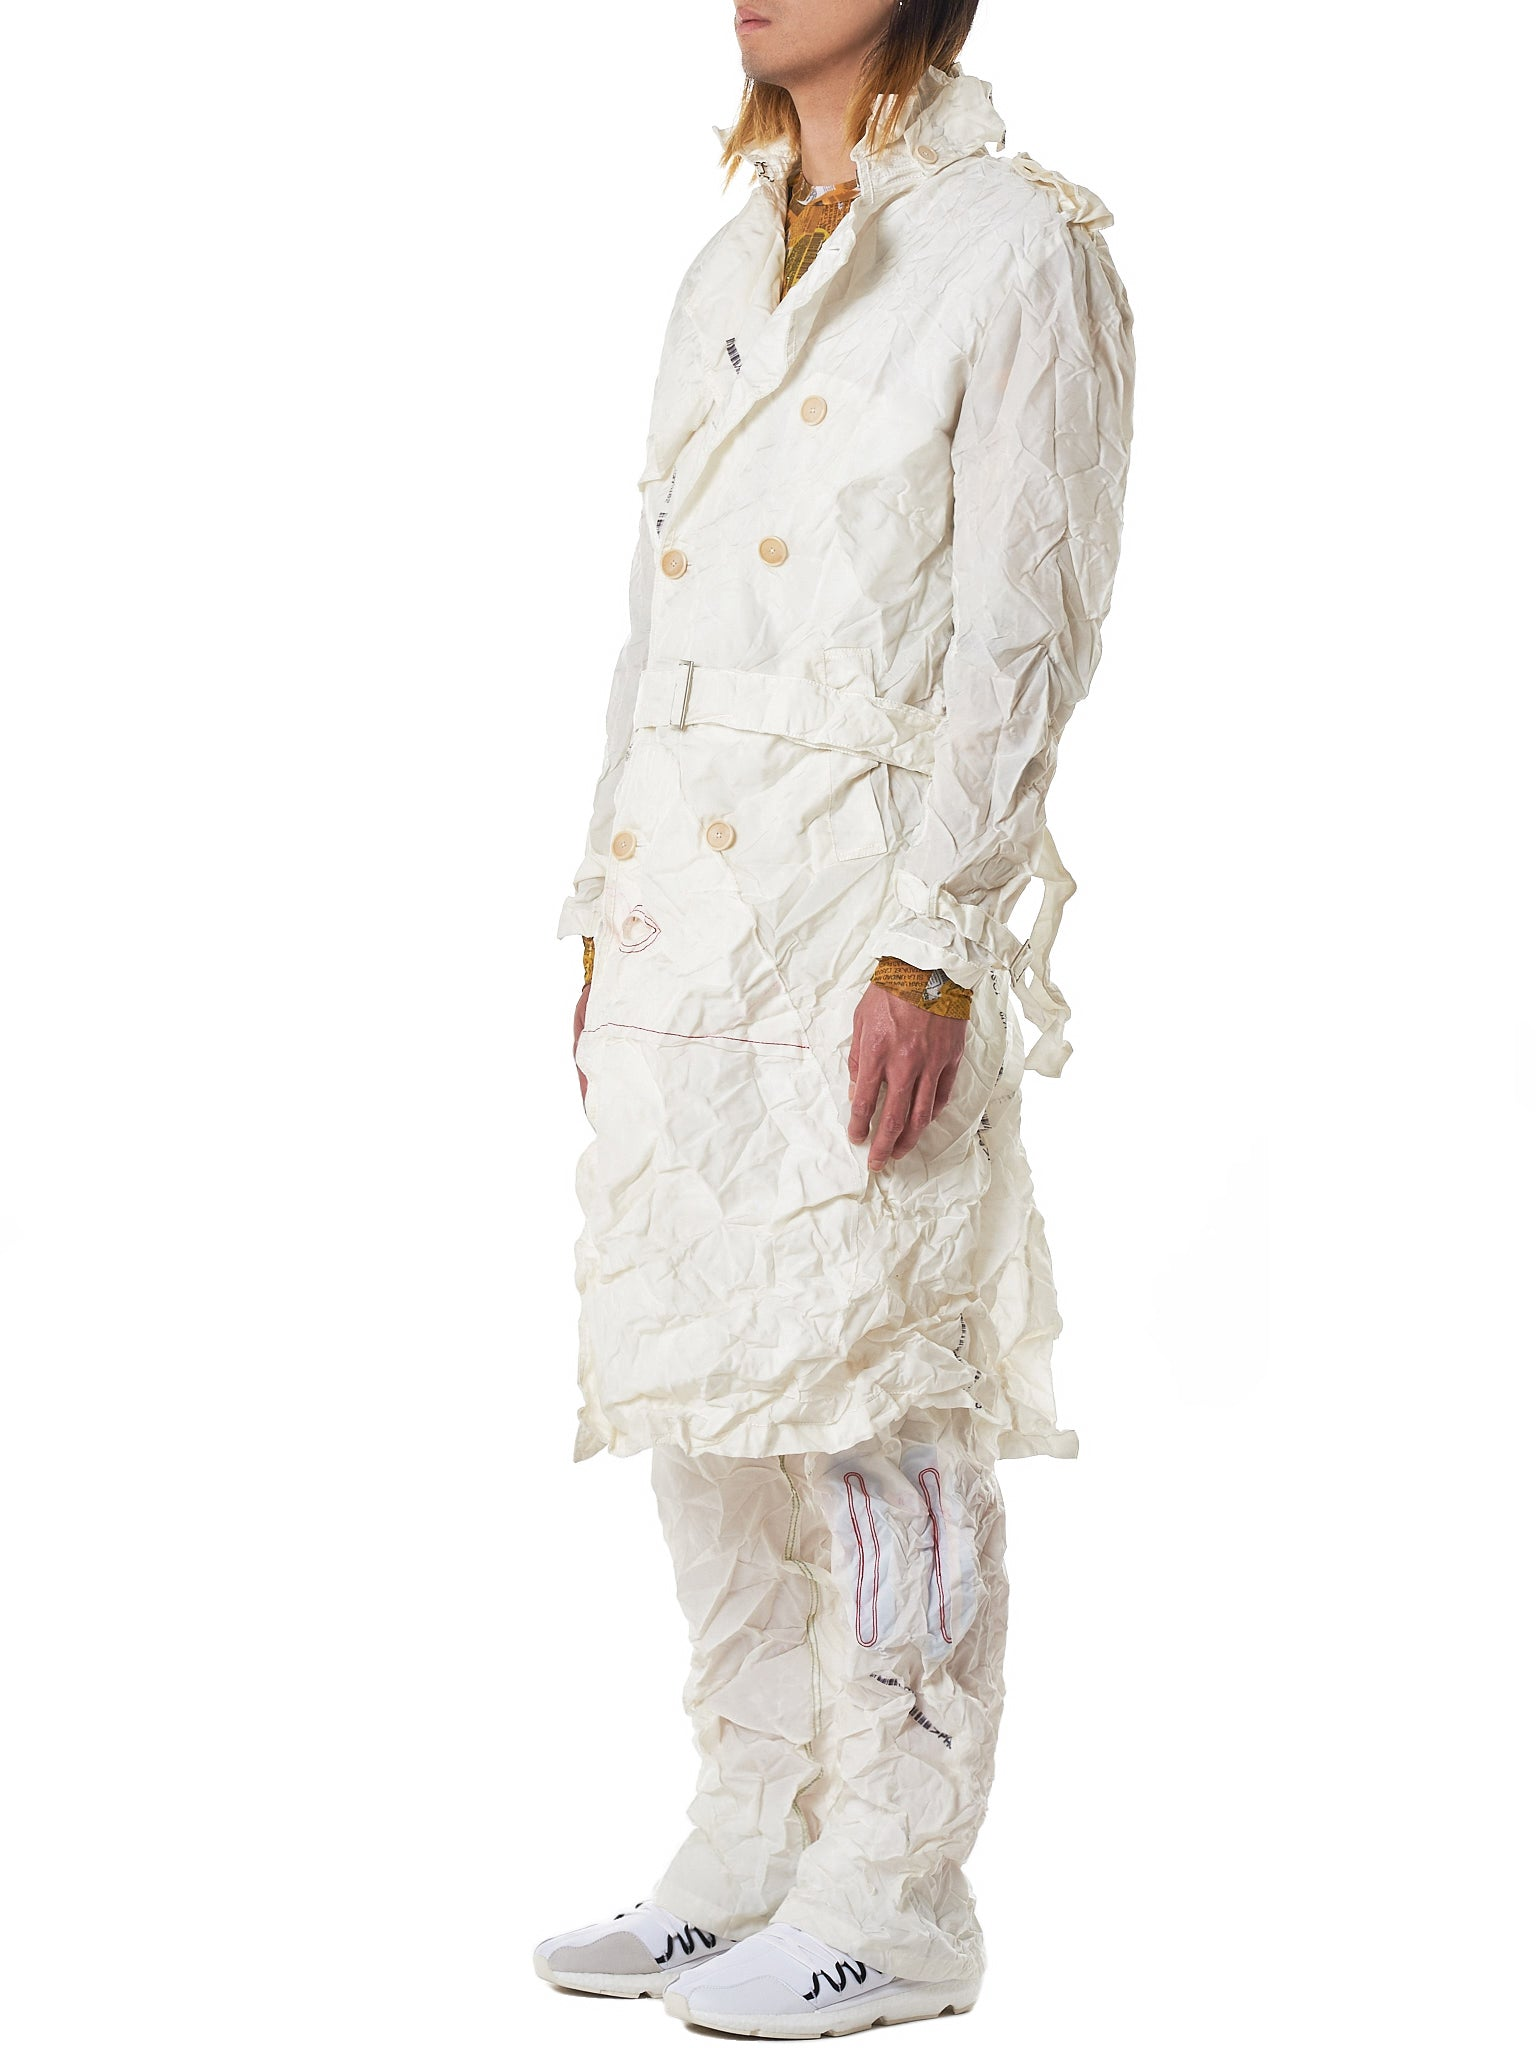 Kanghyuk Airbag Coat - Hlorenzo Side